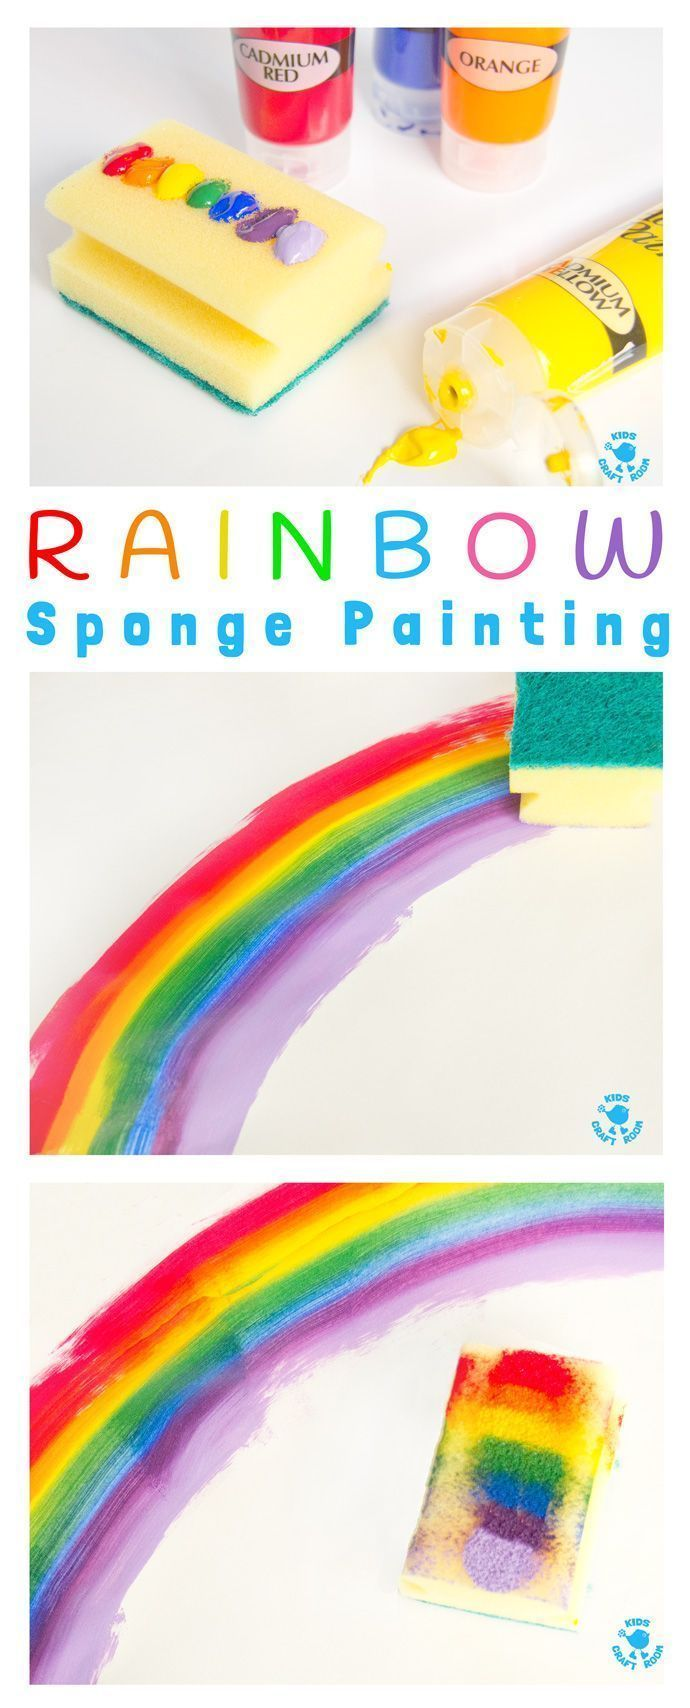 Rainbow Sponge Painting - fun rainbow art for kids that explores colour mixing, blending and textures.